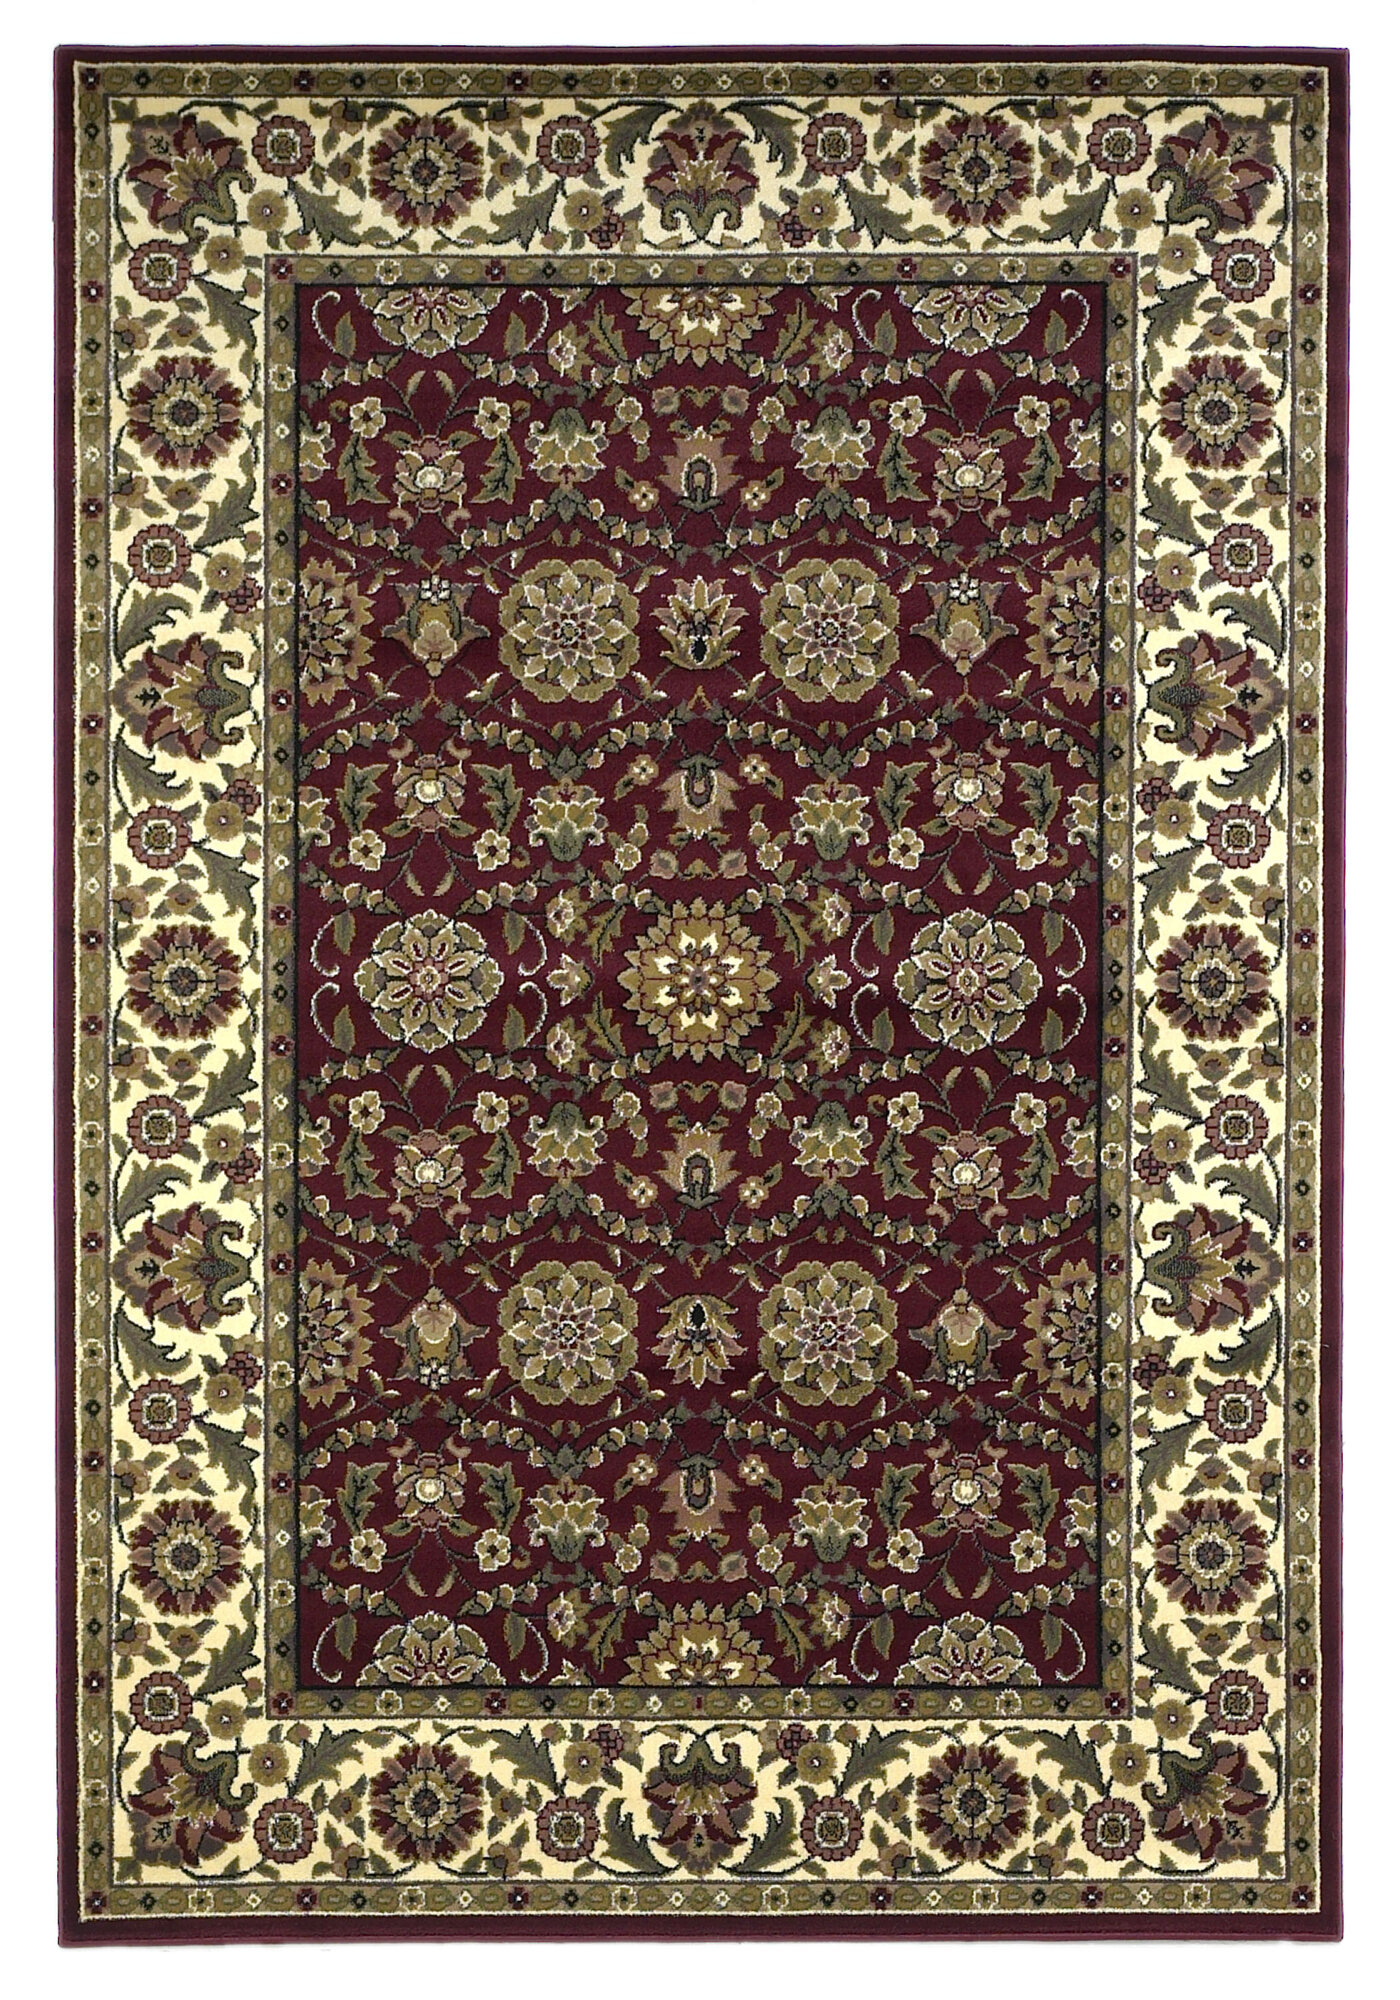 Kas rugs cambridge red cream floral area rug ebay for Cream and red rugs